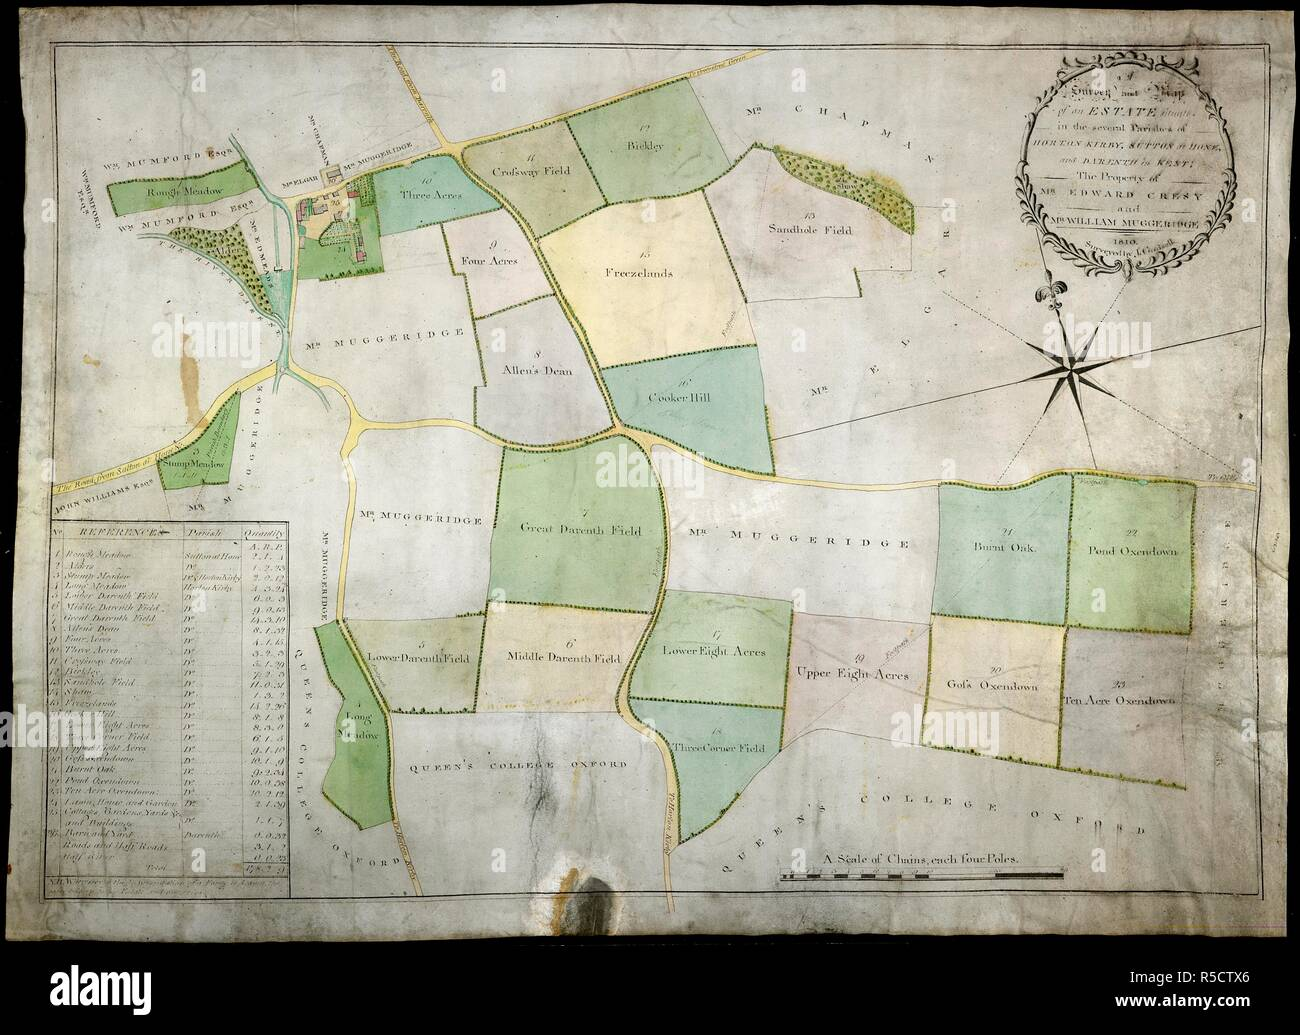 Map Of England Parishes.Kent Estate Map England 1810 Whole Map Survey And Map Of An